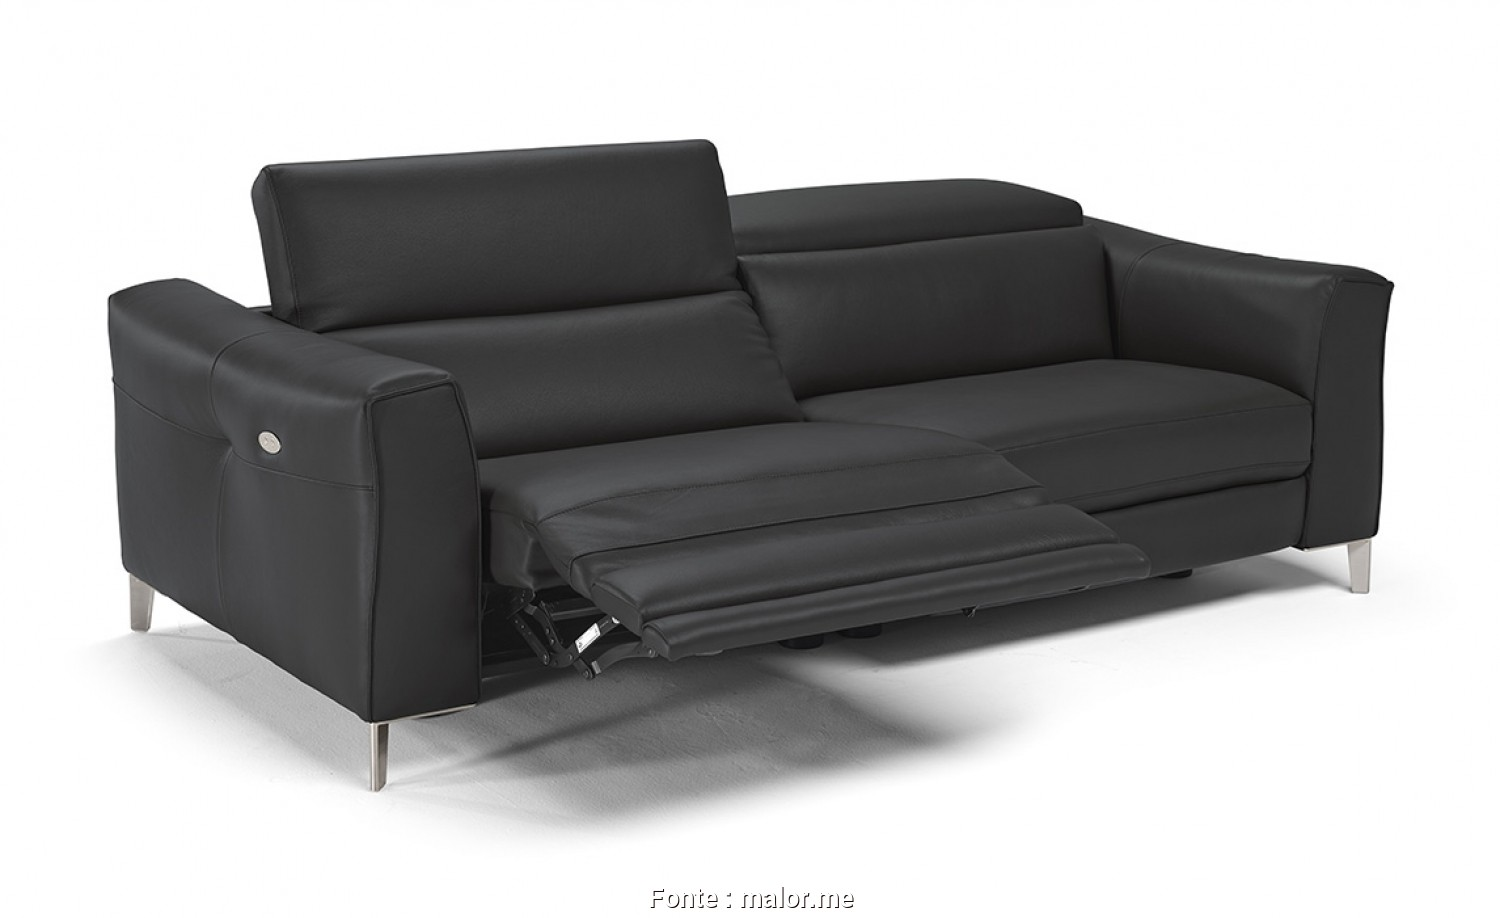 Divano Natuzzi Nero, Originale Divani On Line Outlet Outlet Divani E Divani Best Divani Natuzzi Outlet Contemporary Harrop Us